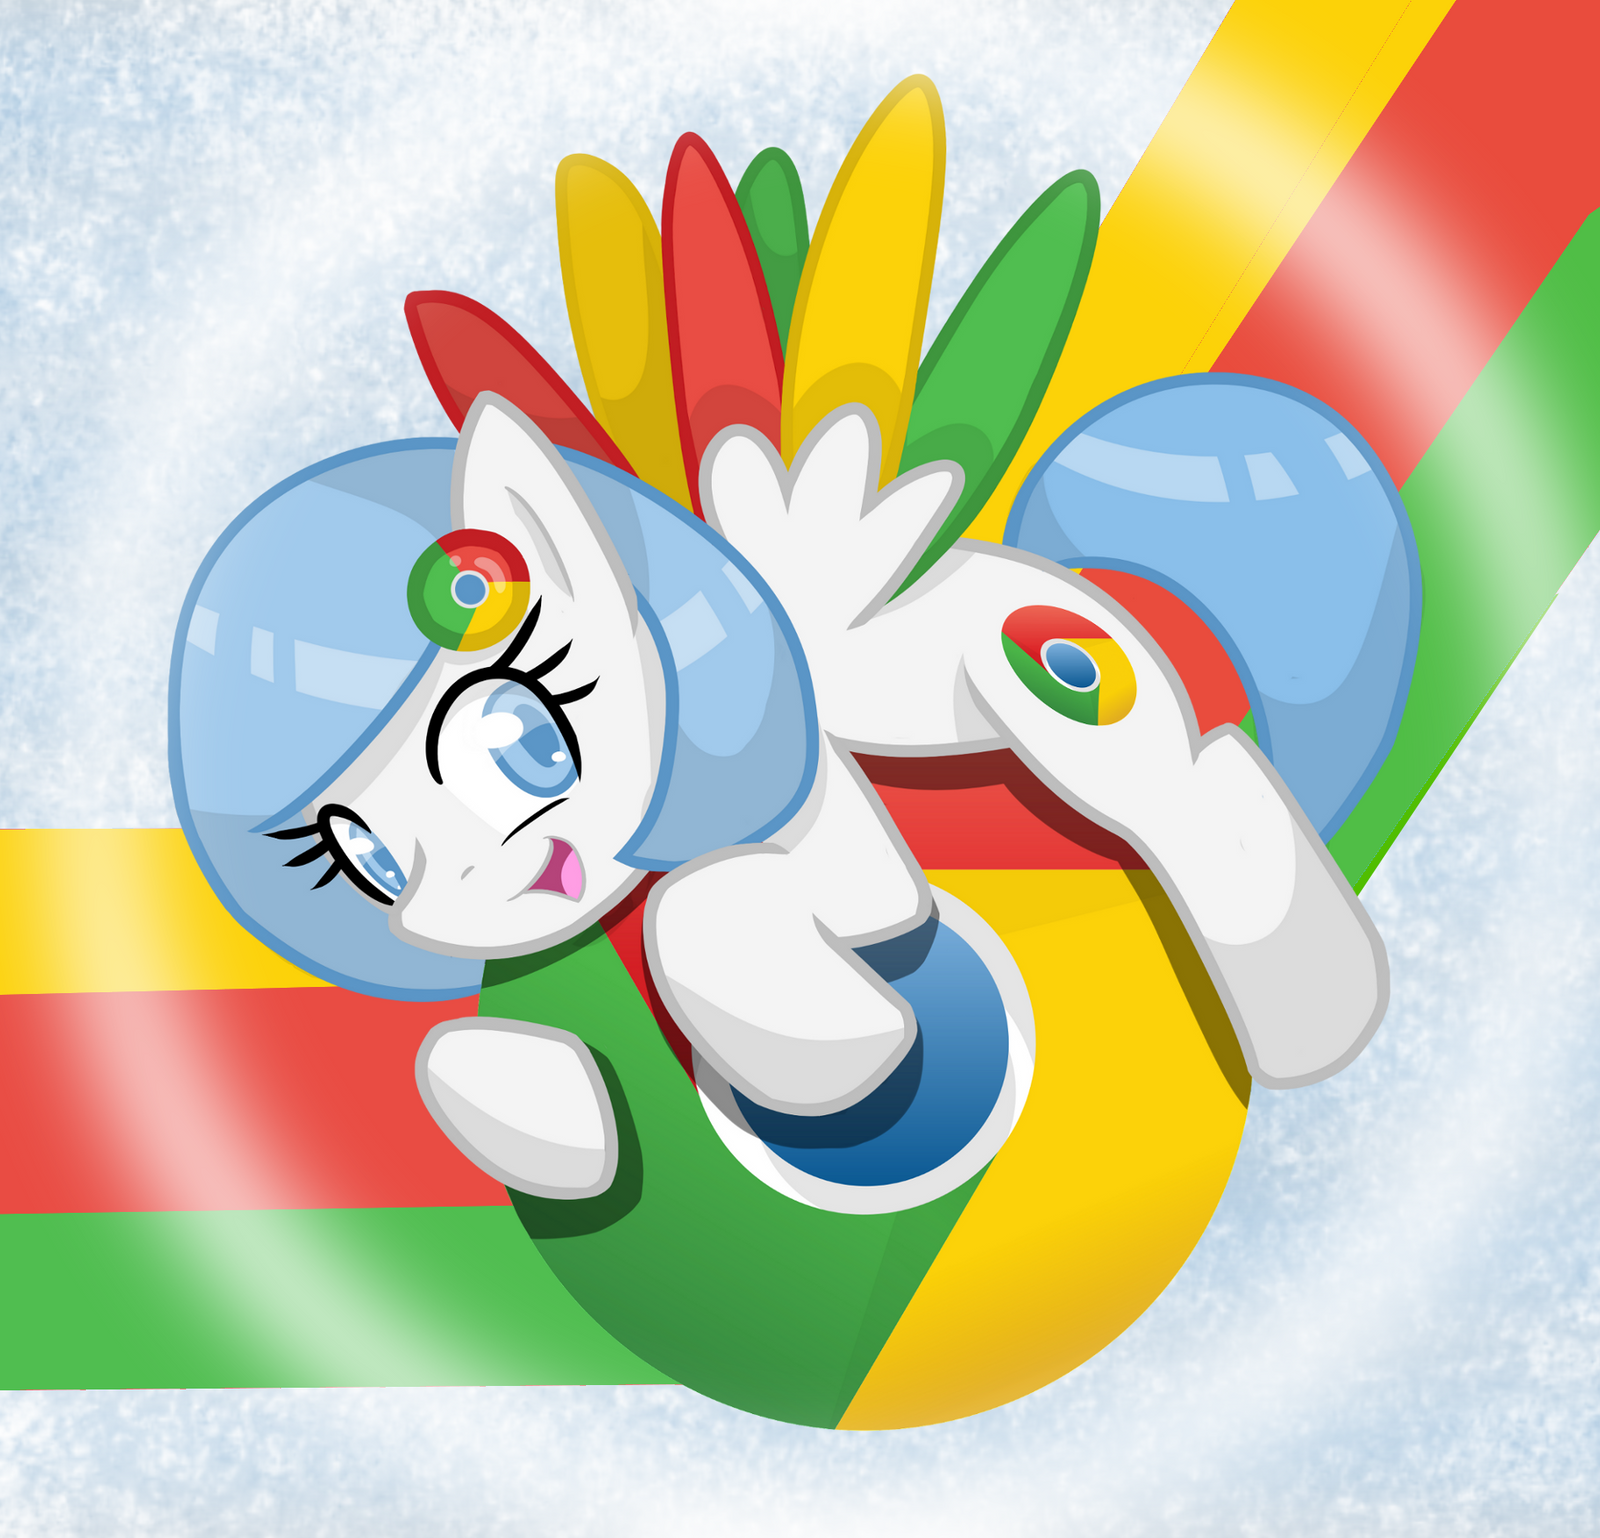 Google chrome themes gallery 2012 -  Google Chrome Pony Wallpaper By Musical Medic